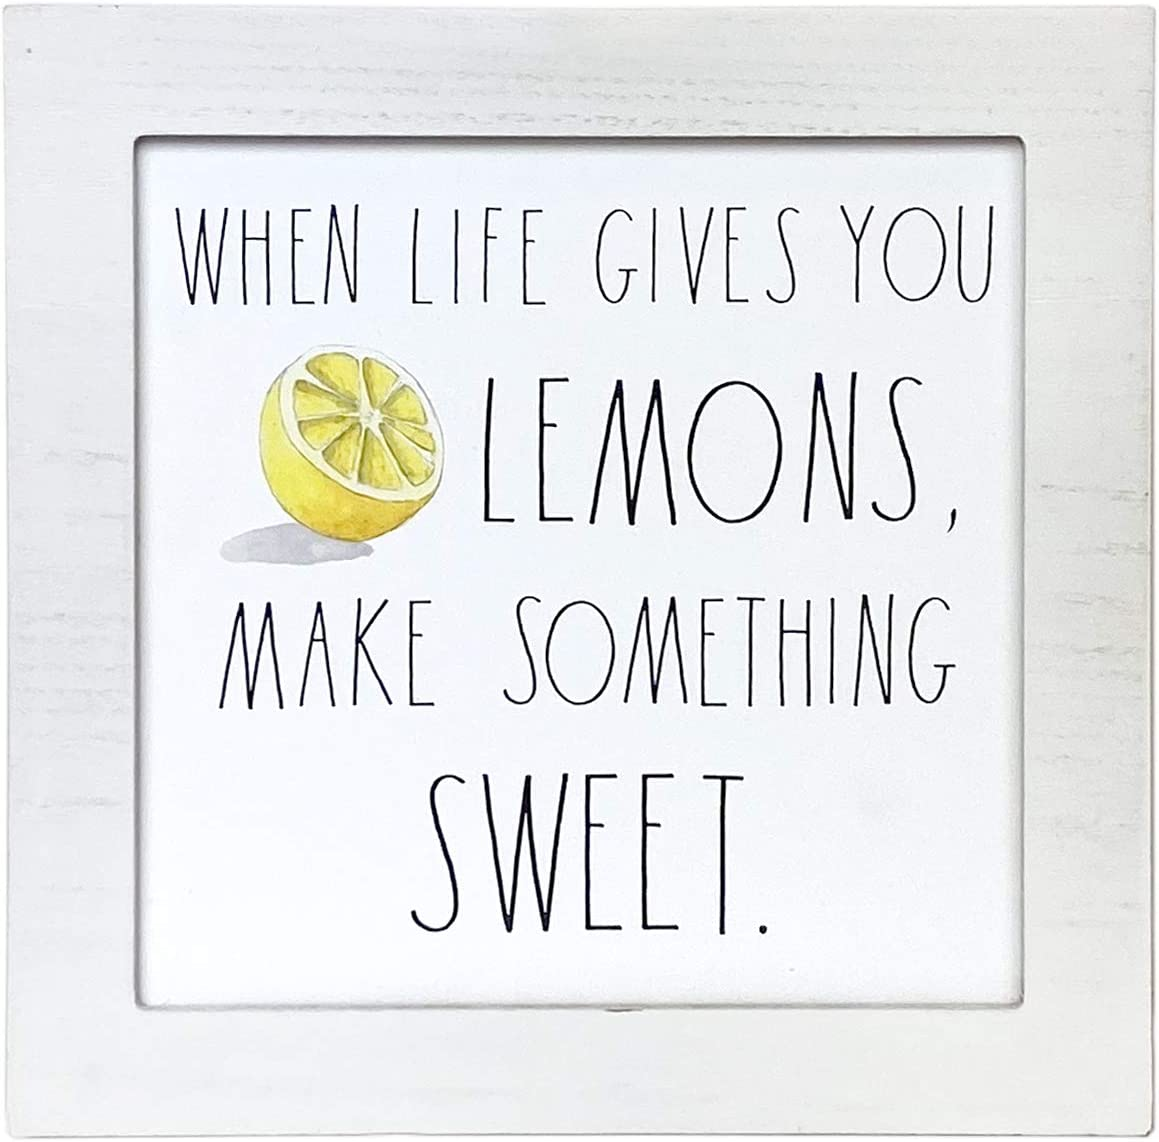 Rae Dunn - White Wall Plaque 'When Life Gives You Lemons' – Home, Office Decor - Cute Inspirational Messages, Quotes – Natural Wood Frame - Rustic, Country, Farmhouse, Wooden, Vintage Design Style